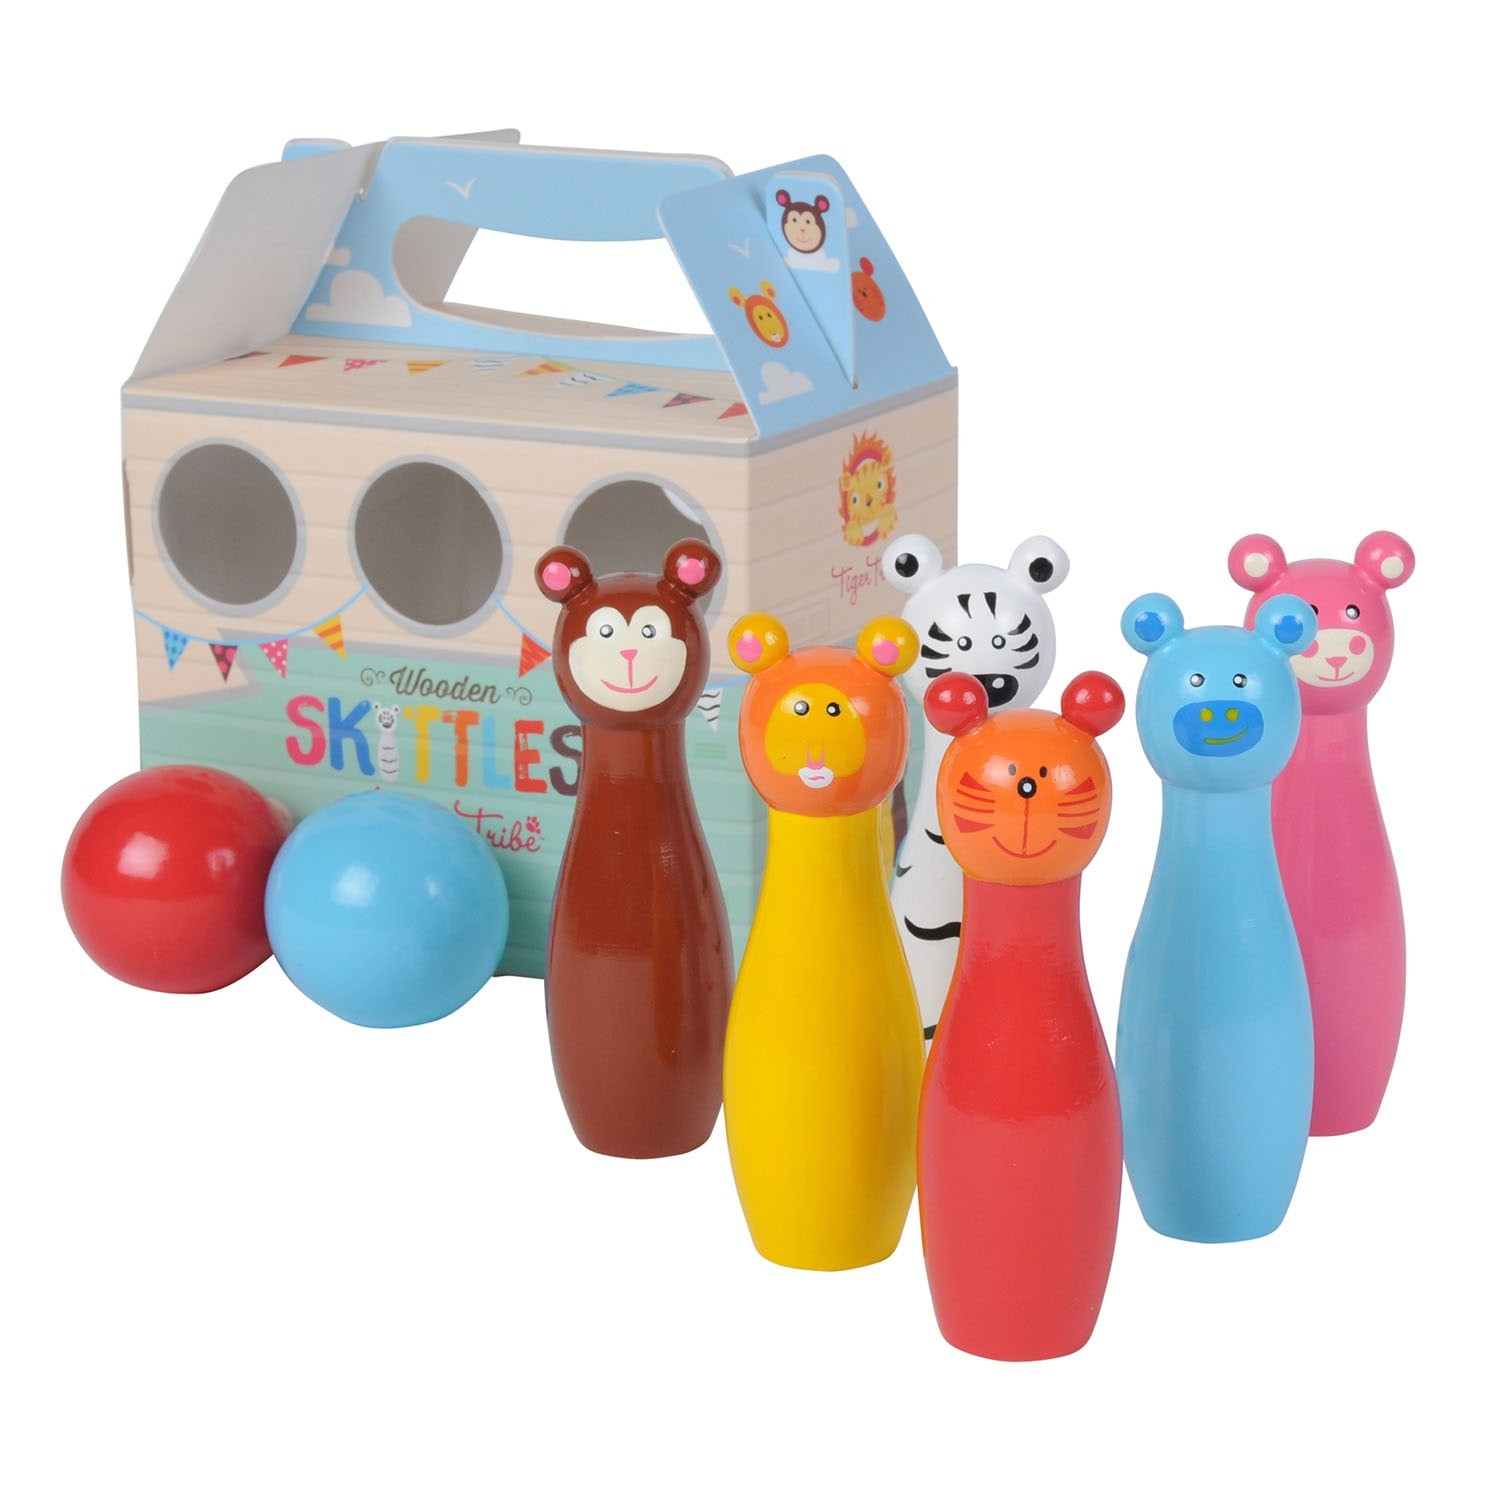 Kids Wooden Toys Tiger Tribe Animal Skittles